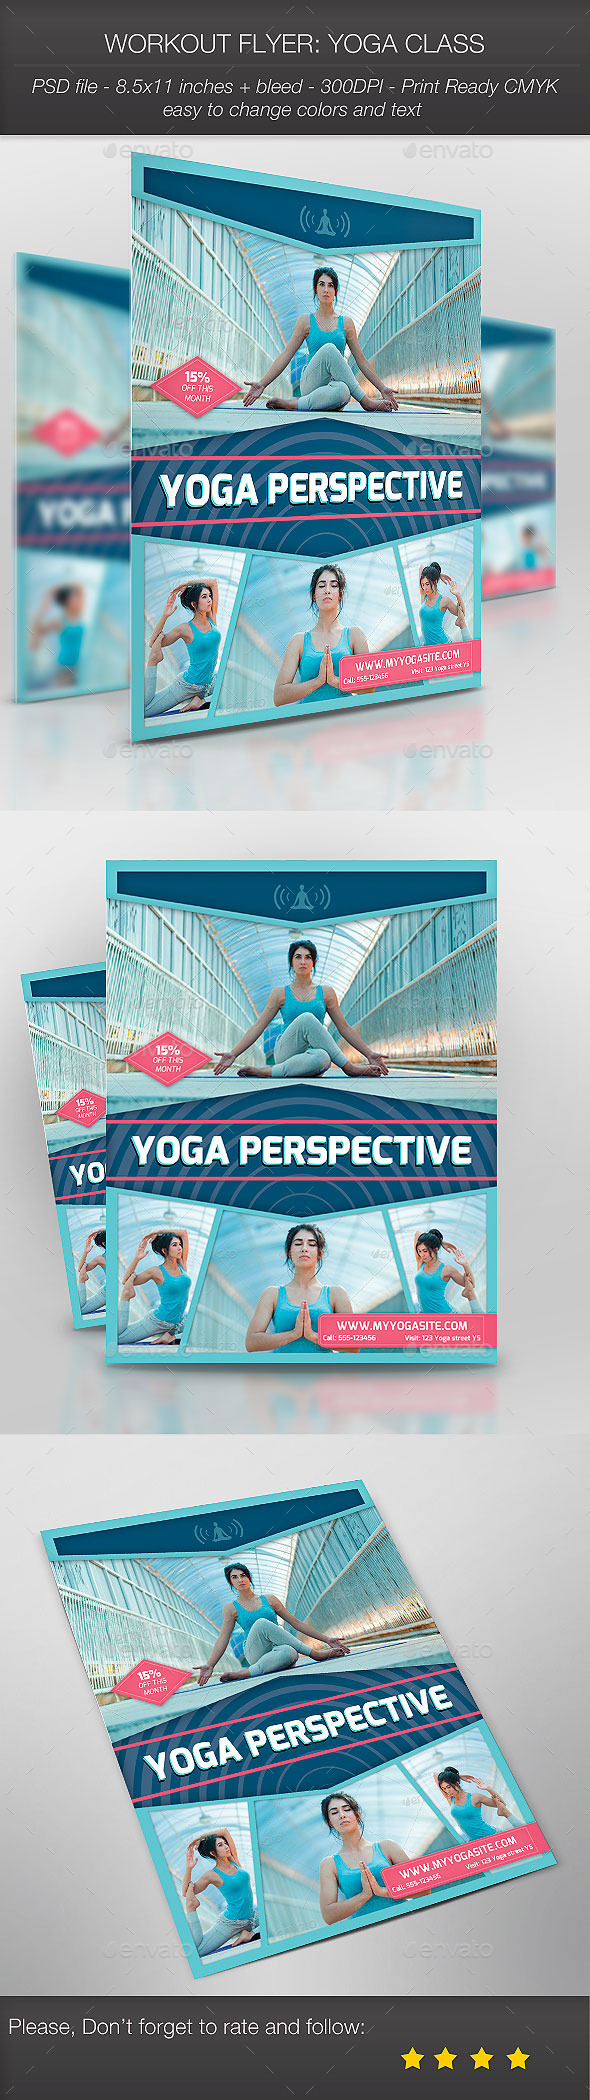 Workout Flyer Yoga Class